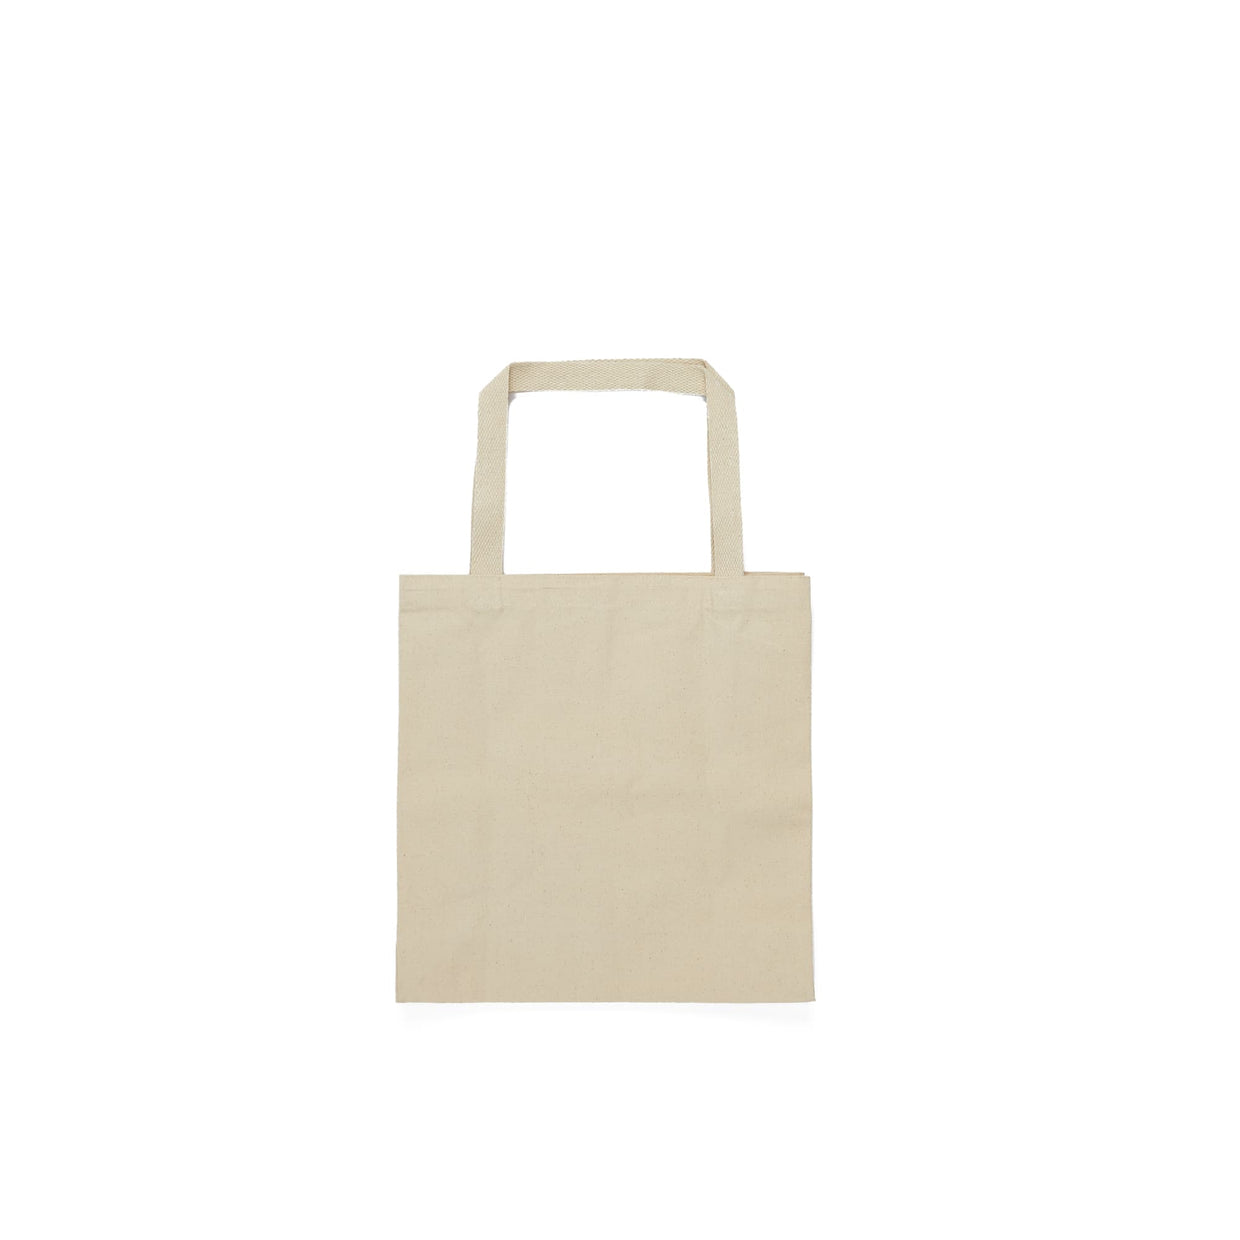 'Sunrise' Tote Bag